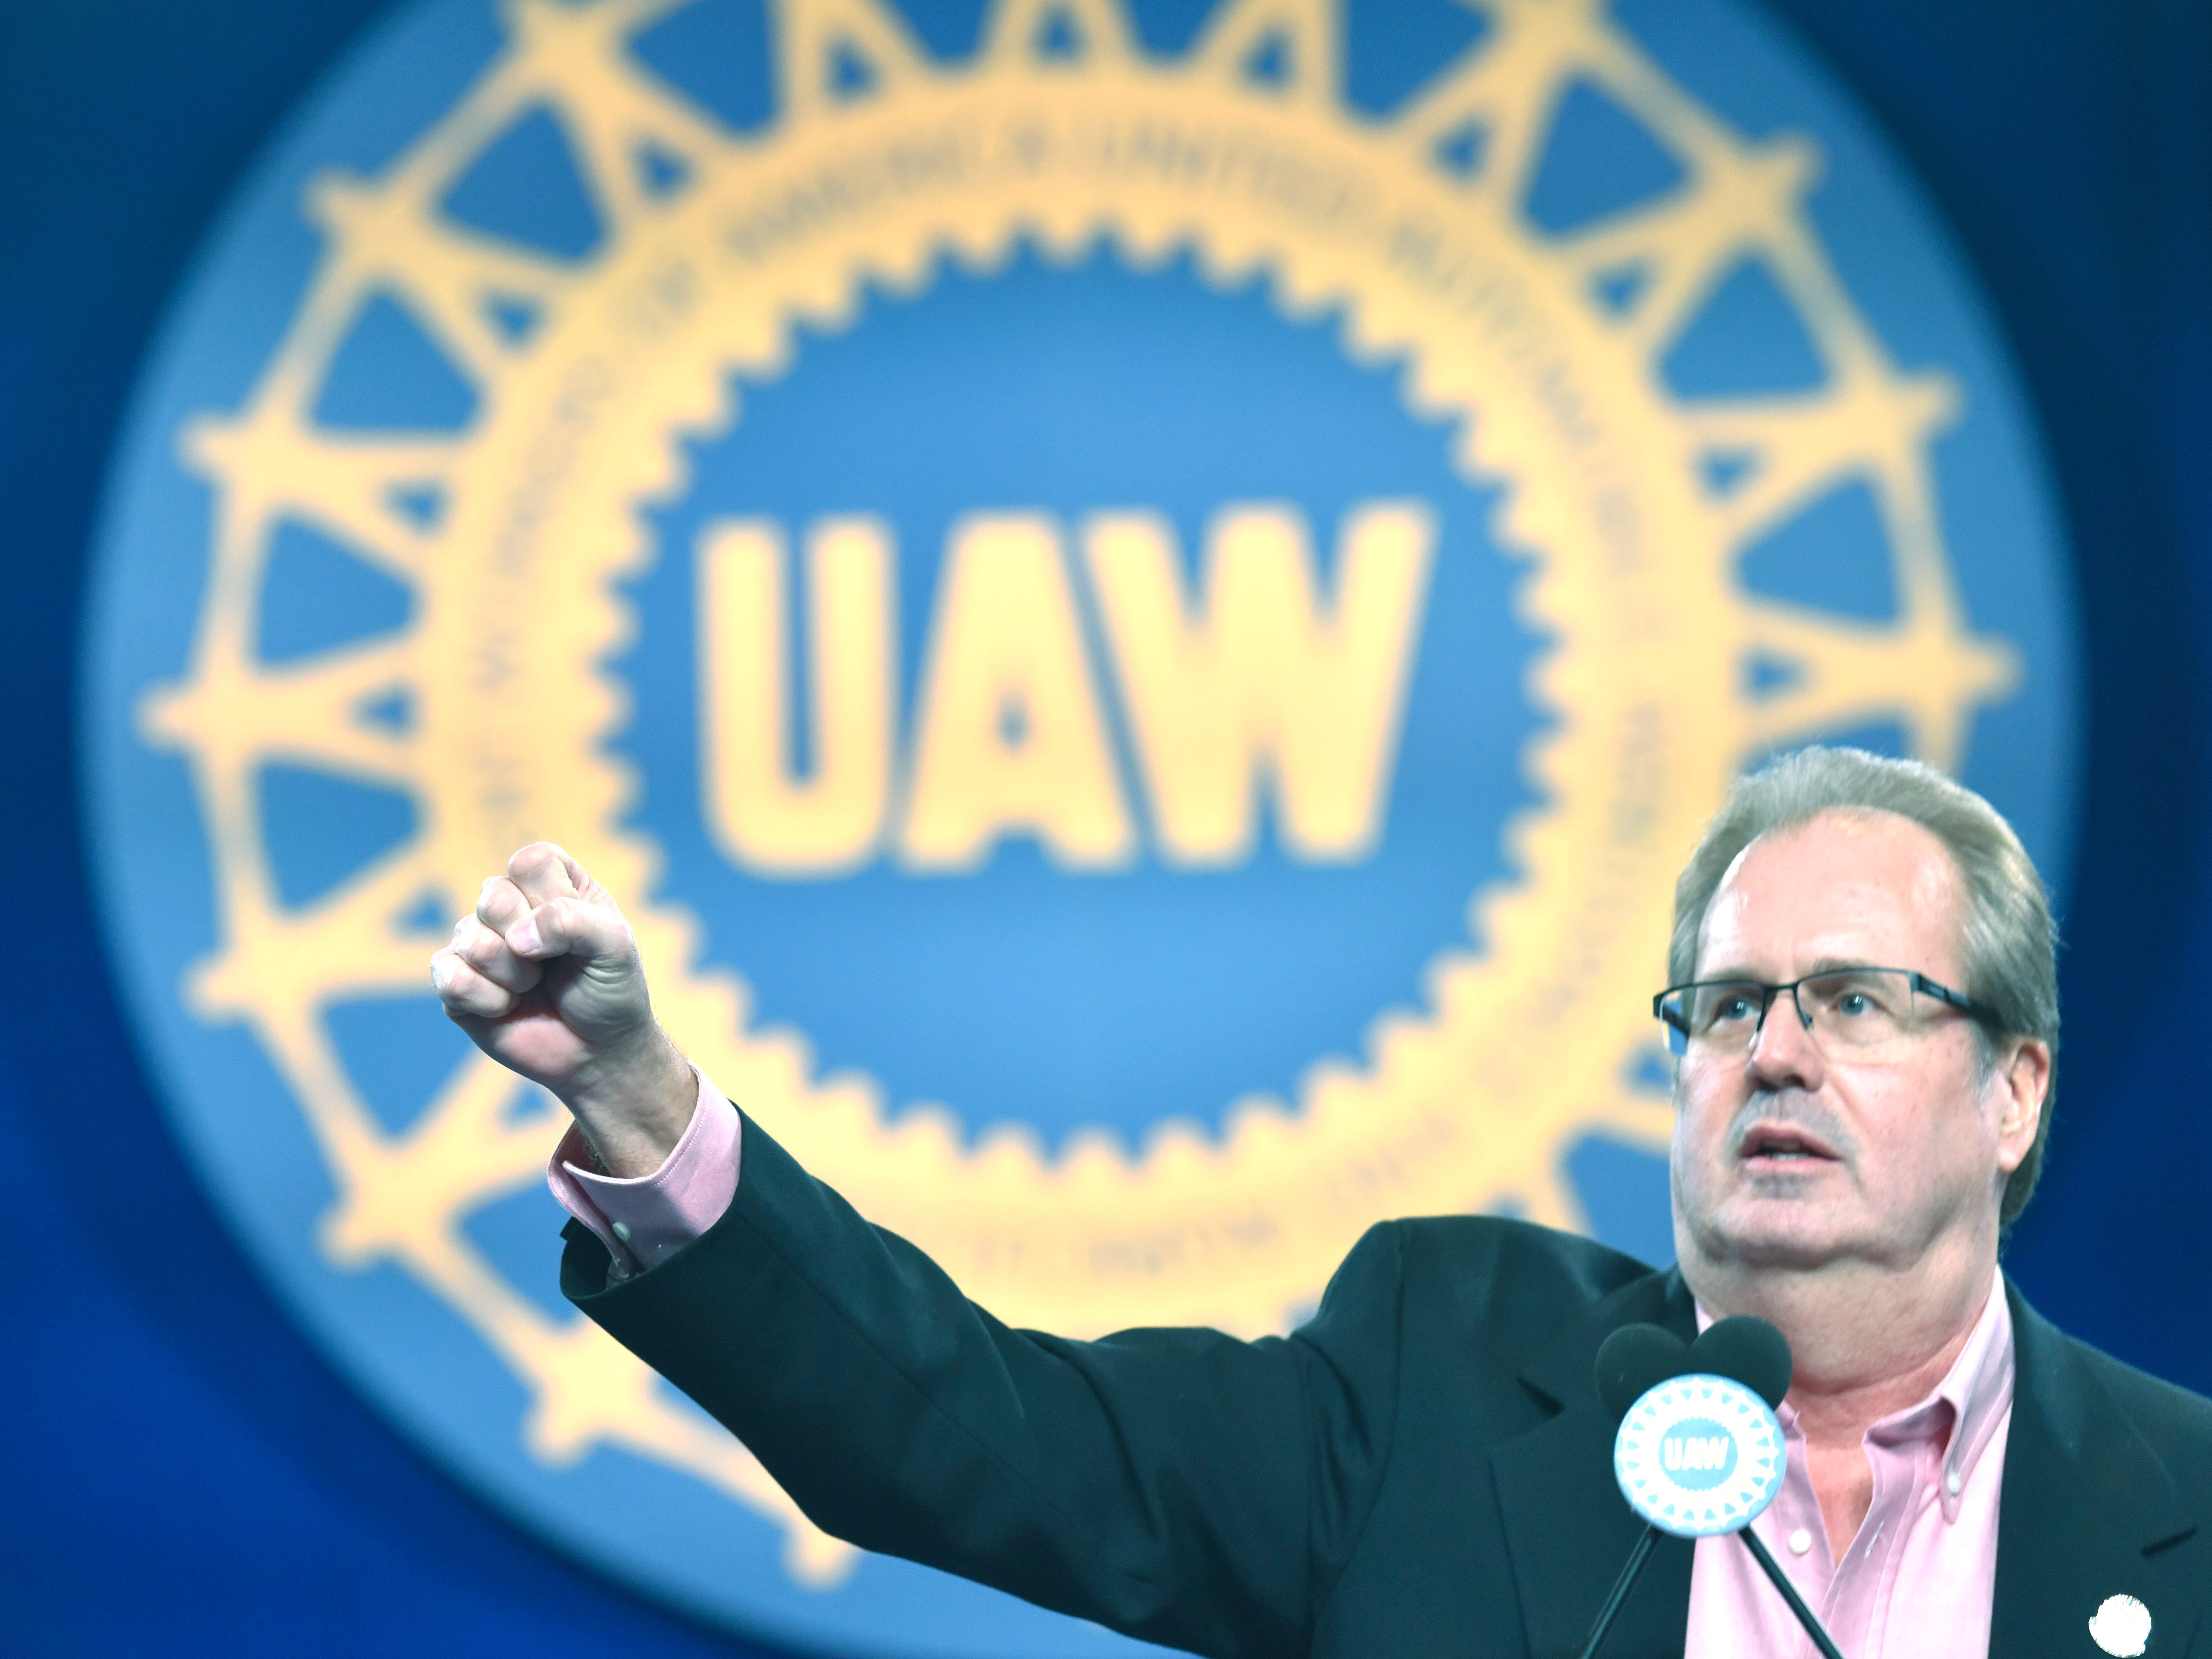 UAW President Gary Jones fires up delegates as he starts the chant, 'We Are One,' during his keynote speech.